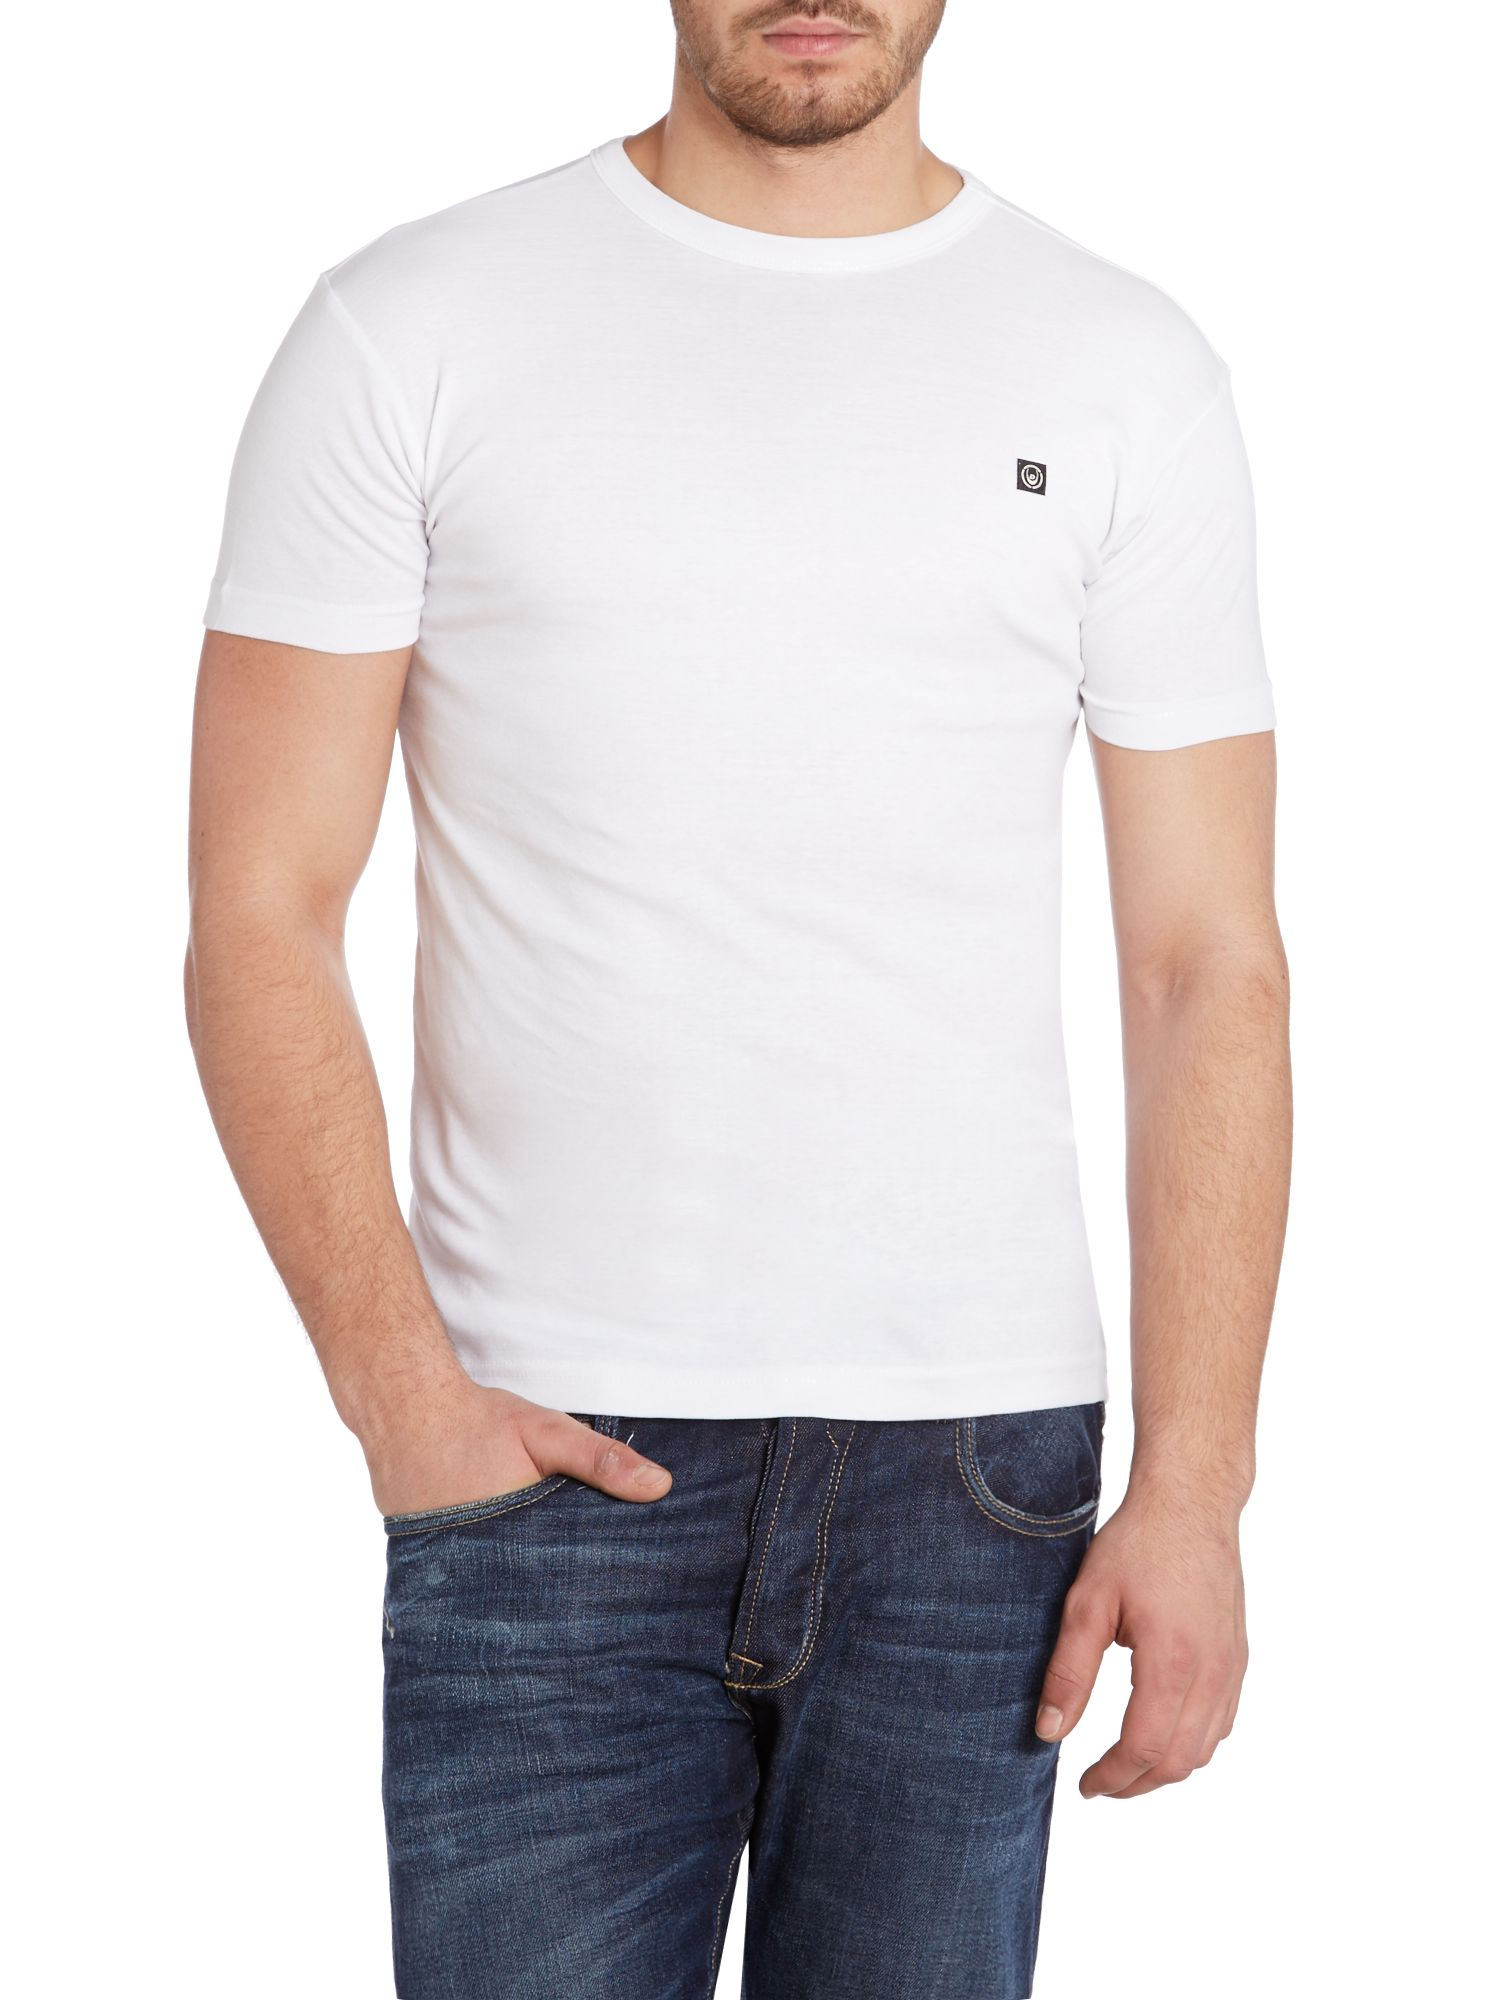 Colin short sleeve crew neck t-shirt